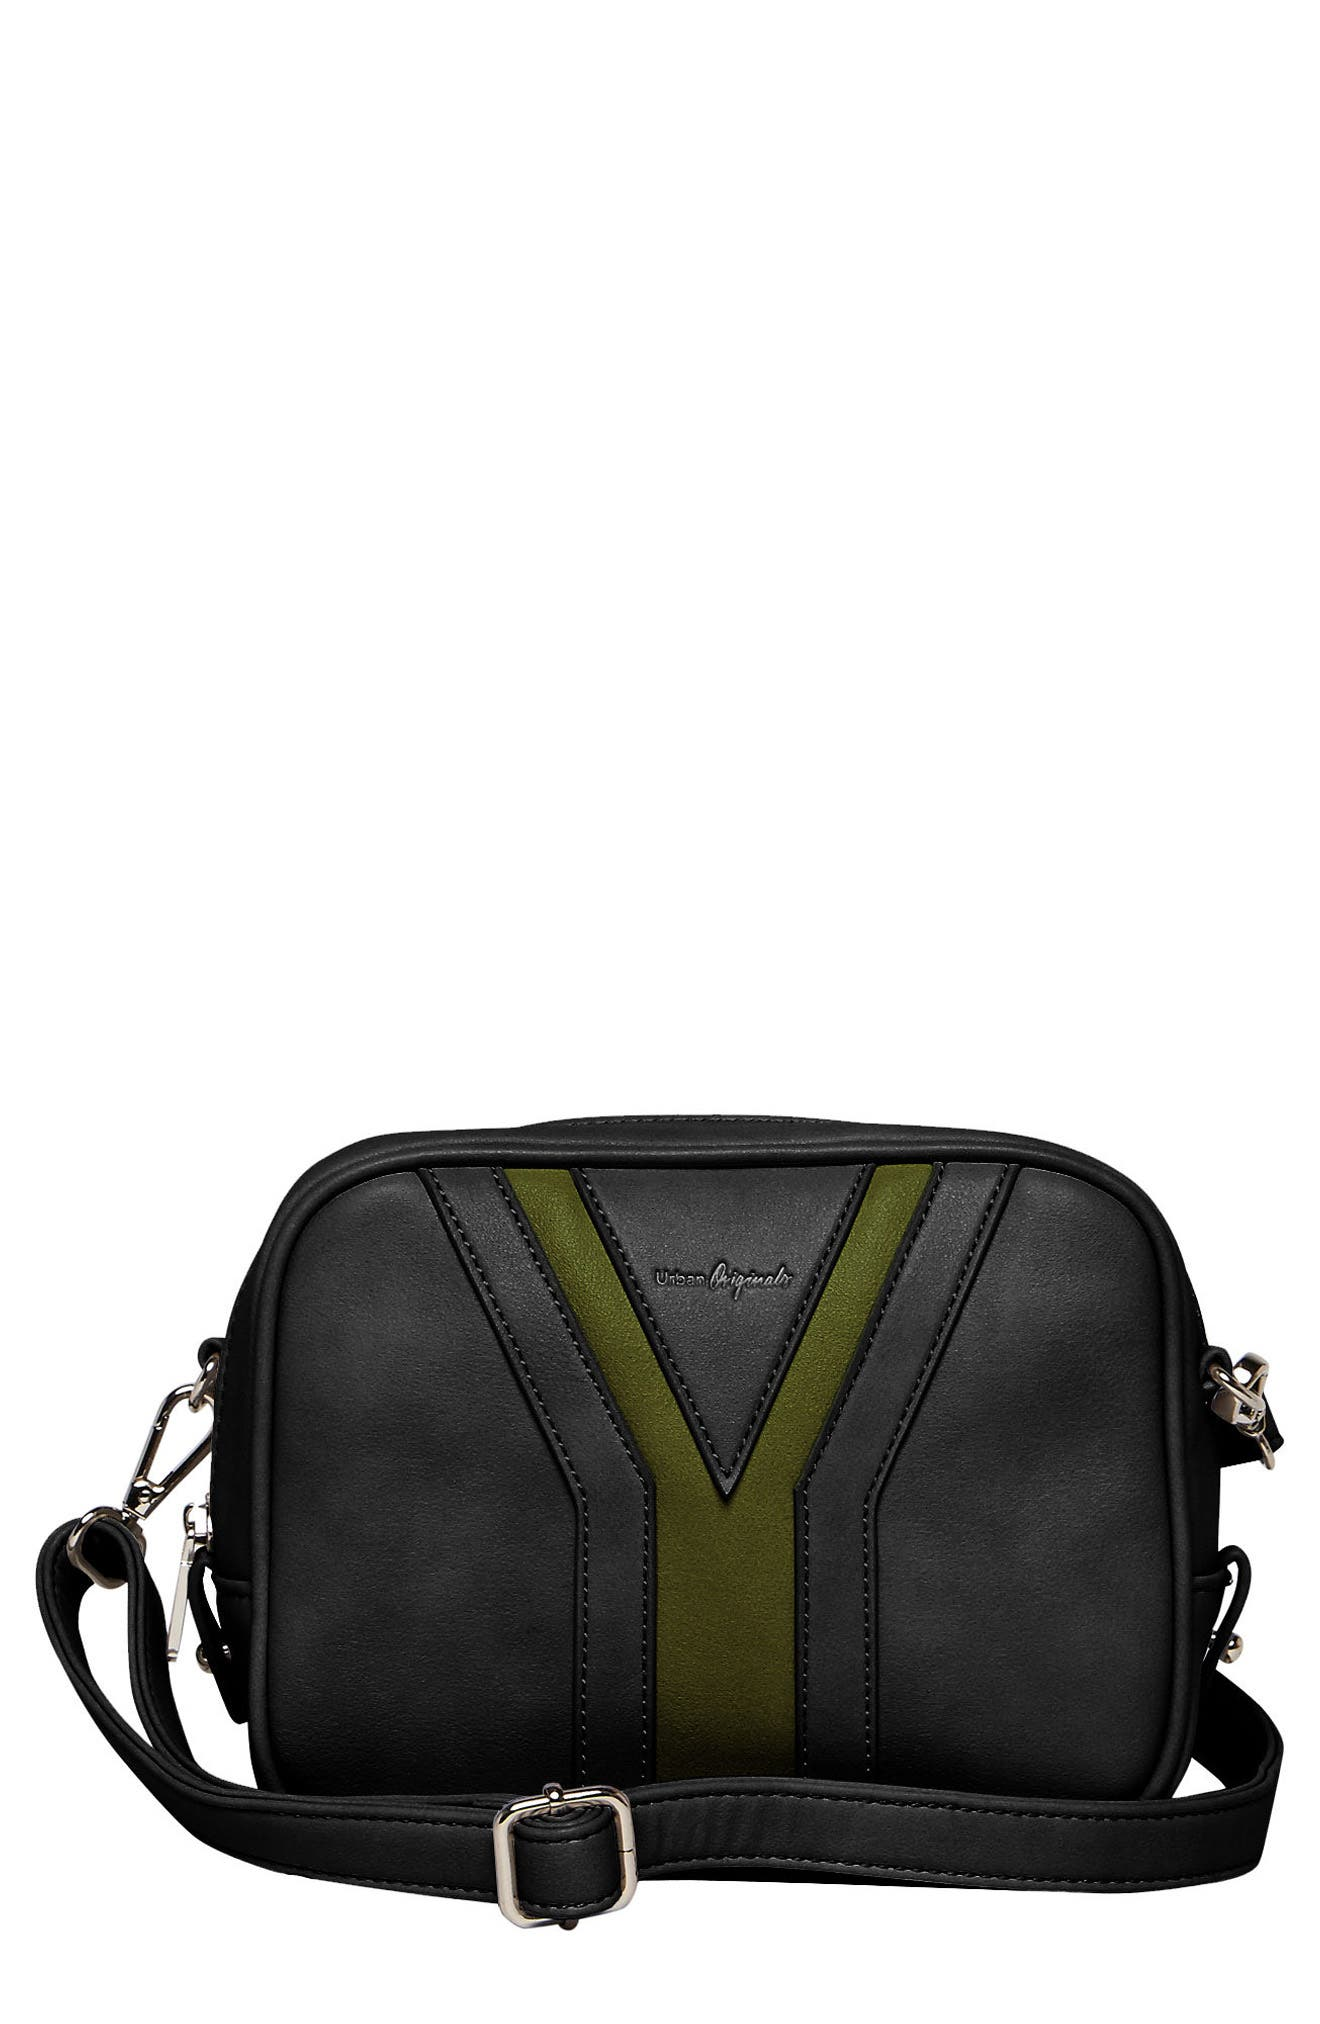 Late Night Vegan Leather Crossbody Bag,                             Main thumbnail 1, color,                             Black/ Green